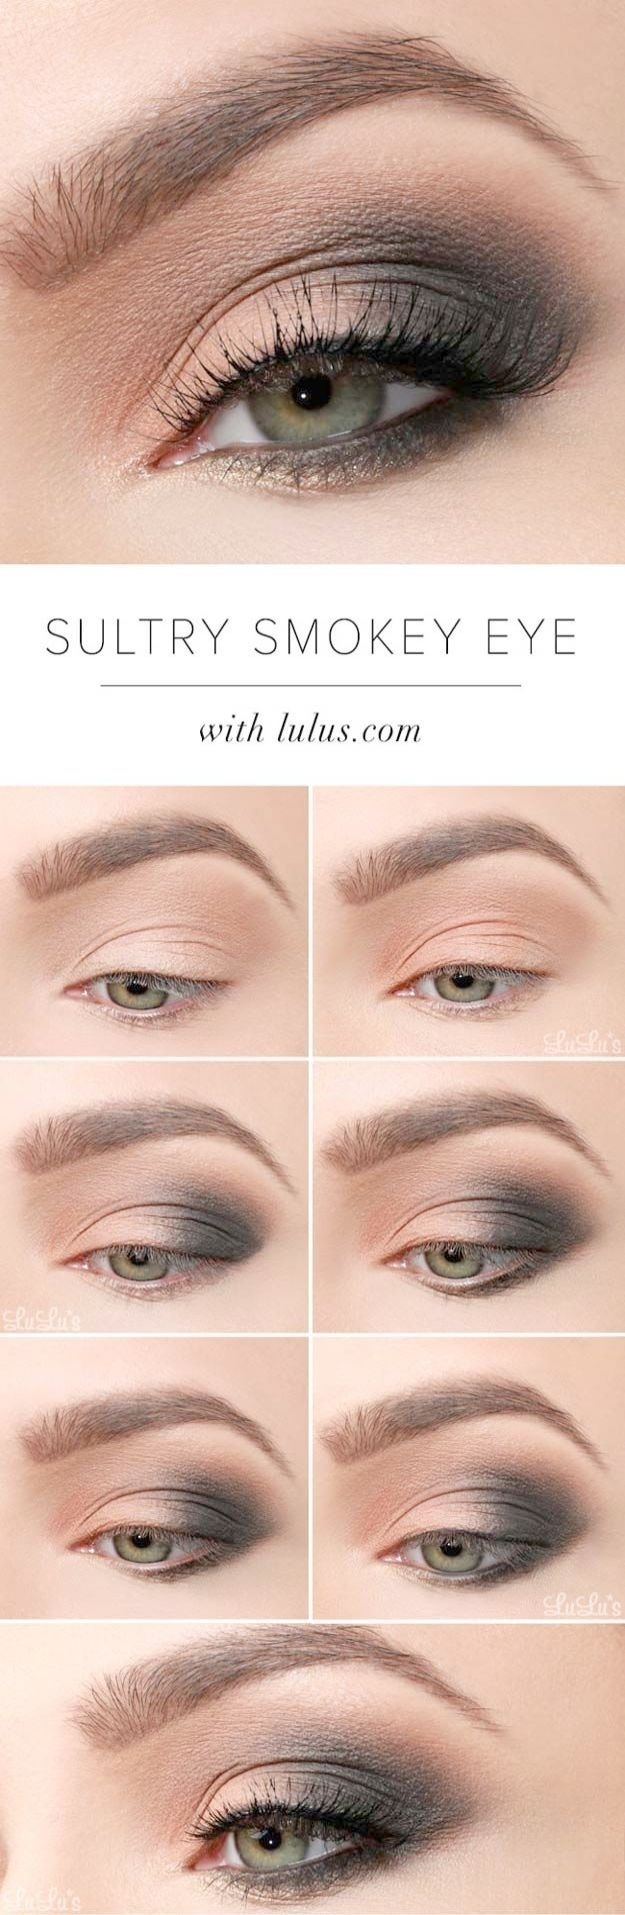 Awesome Smokey Eye Makeup For Blue Eyes Red Hair pertaining to Good Eyeshadow Colors For Blue Eyes And Red Hair